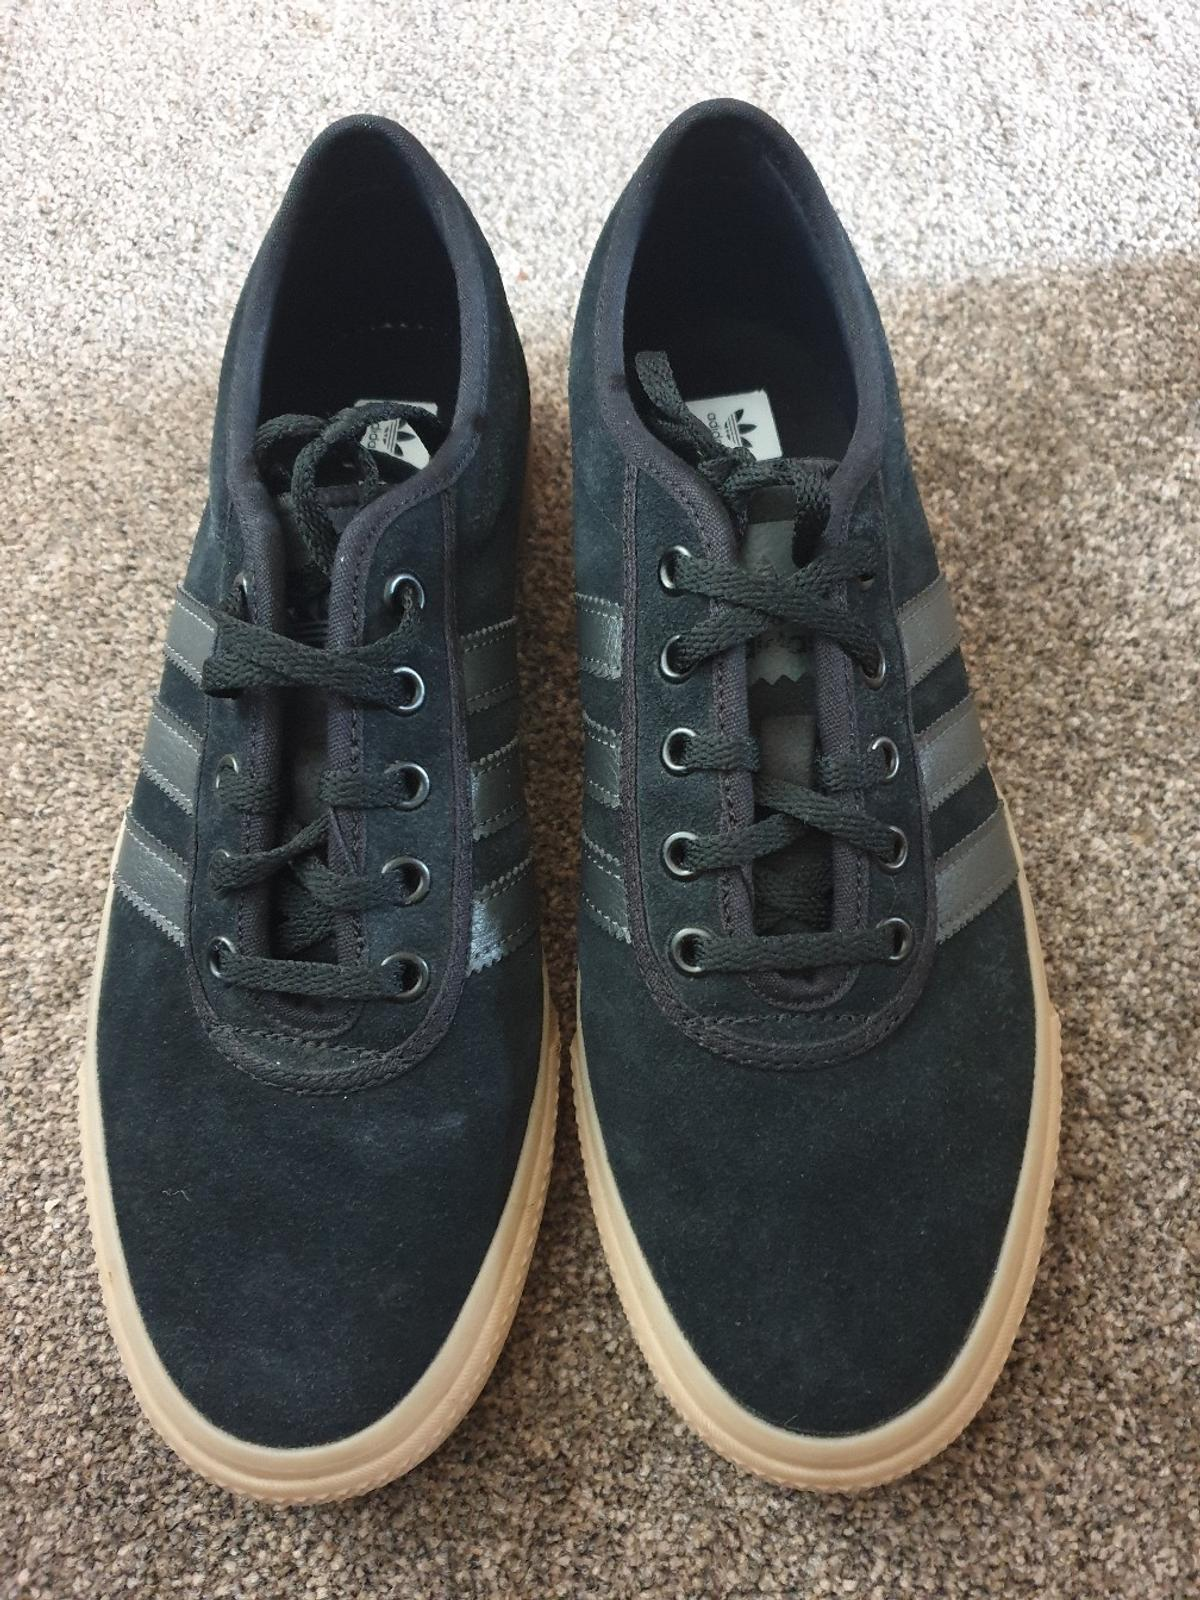 Adidas Gazelle trainers size 8.5 in CH42 Wirral for £40.00